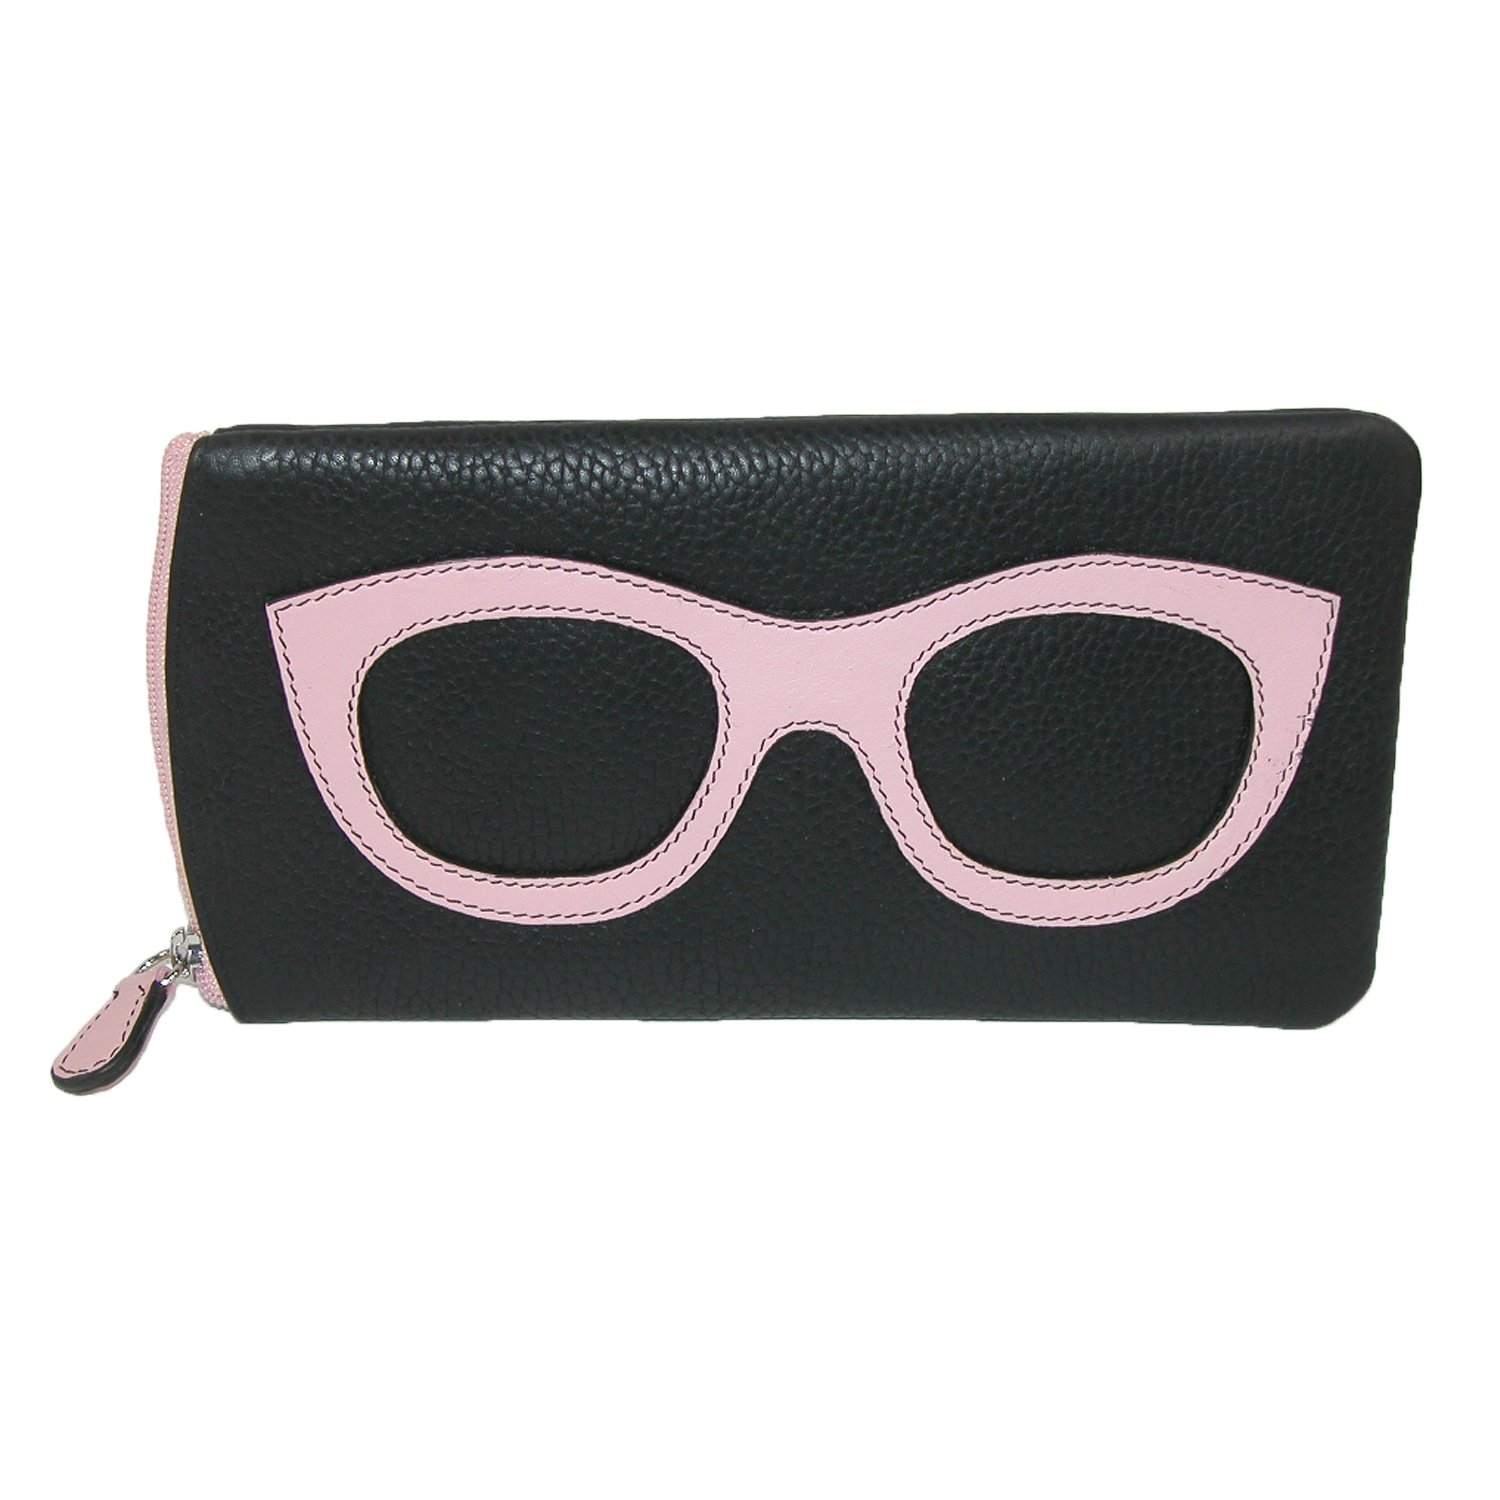 ili New York 6462 Leather Eyeglass Case